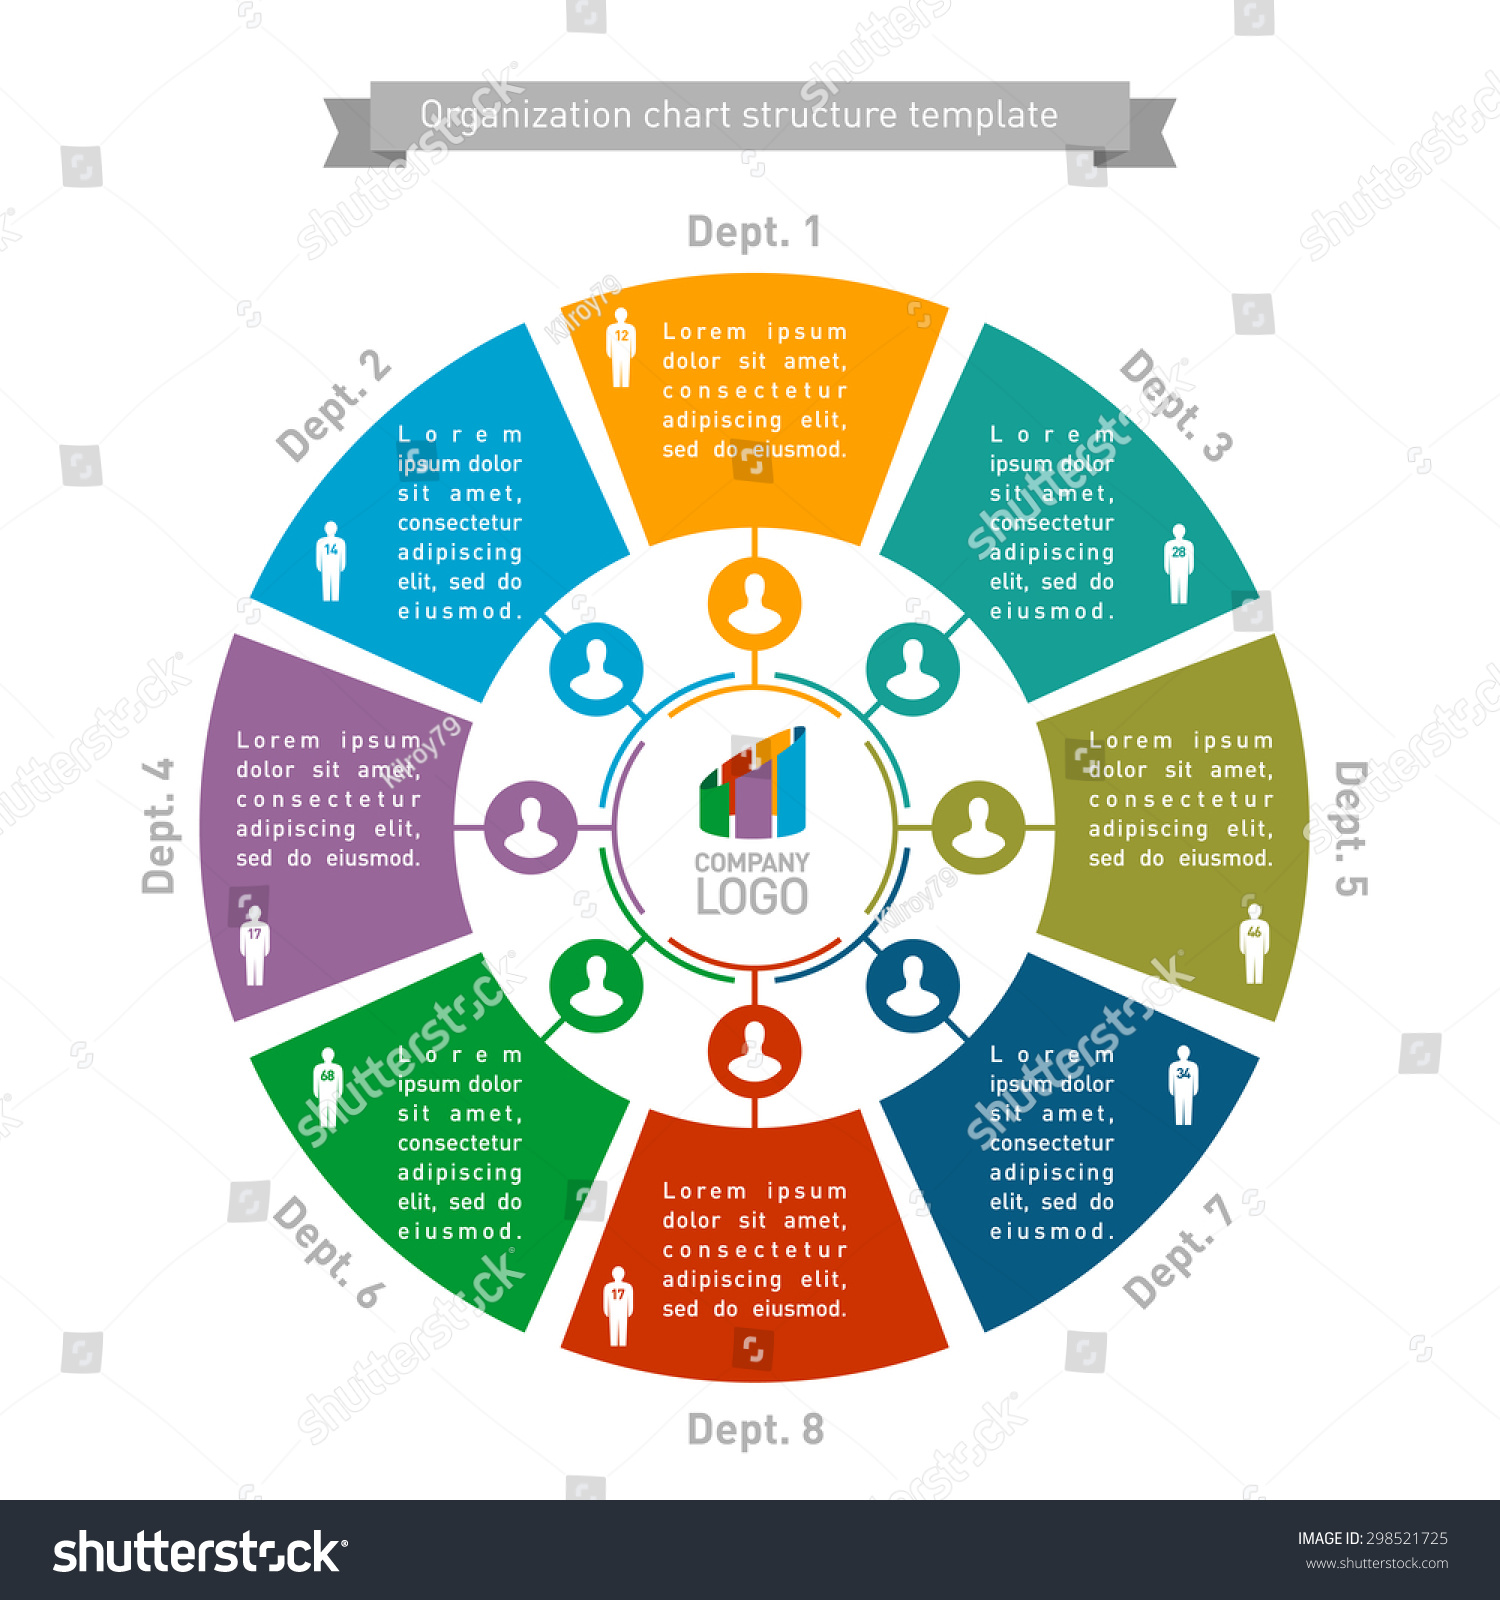 Organizational Chart Structure Template People Count Stock